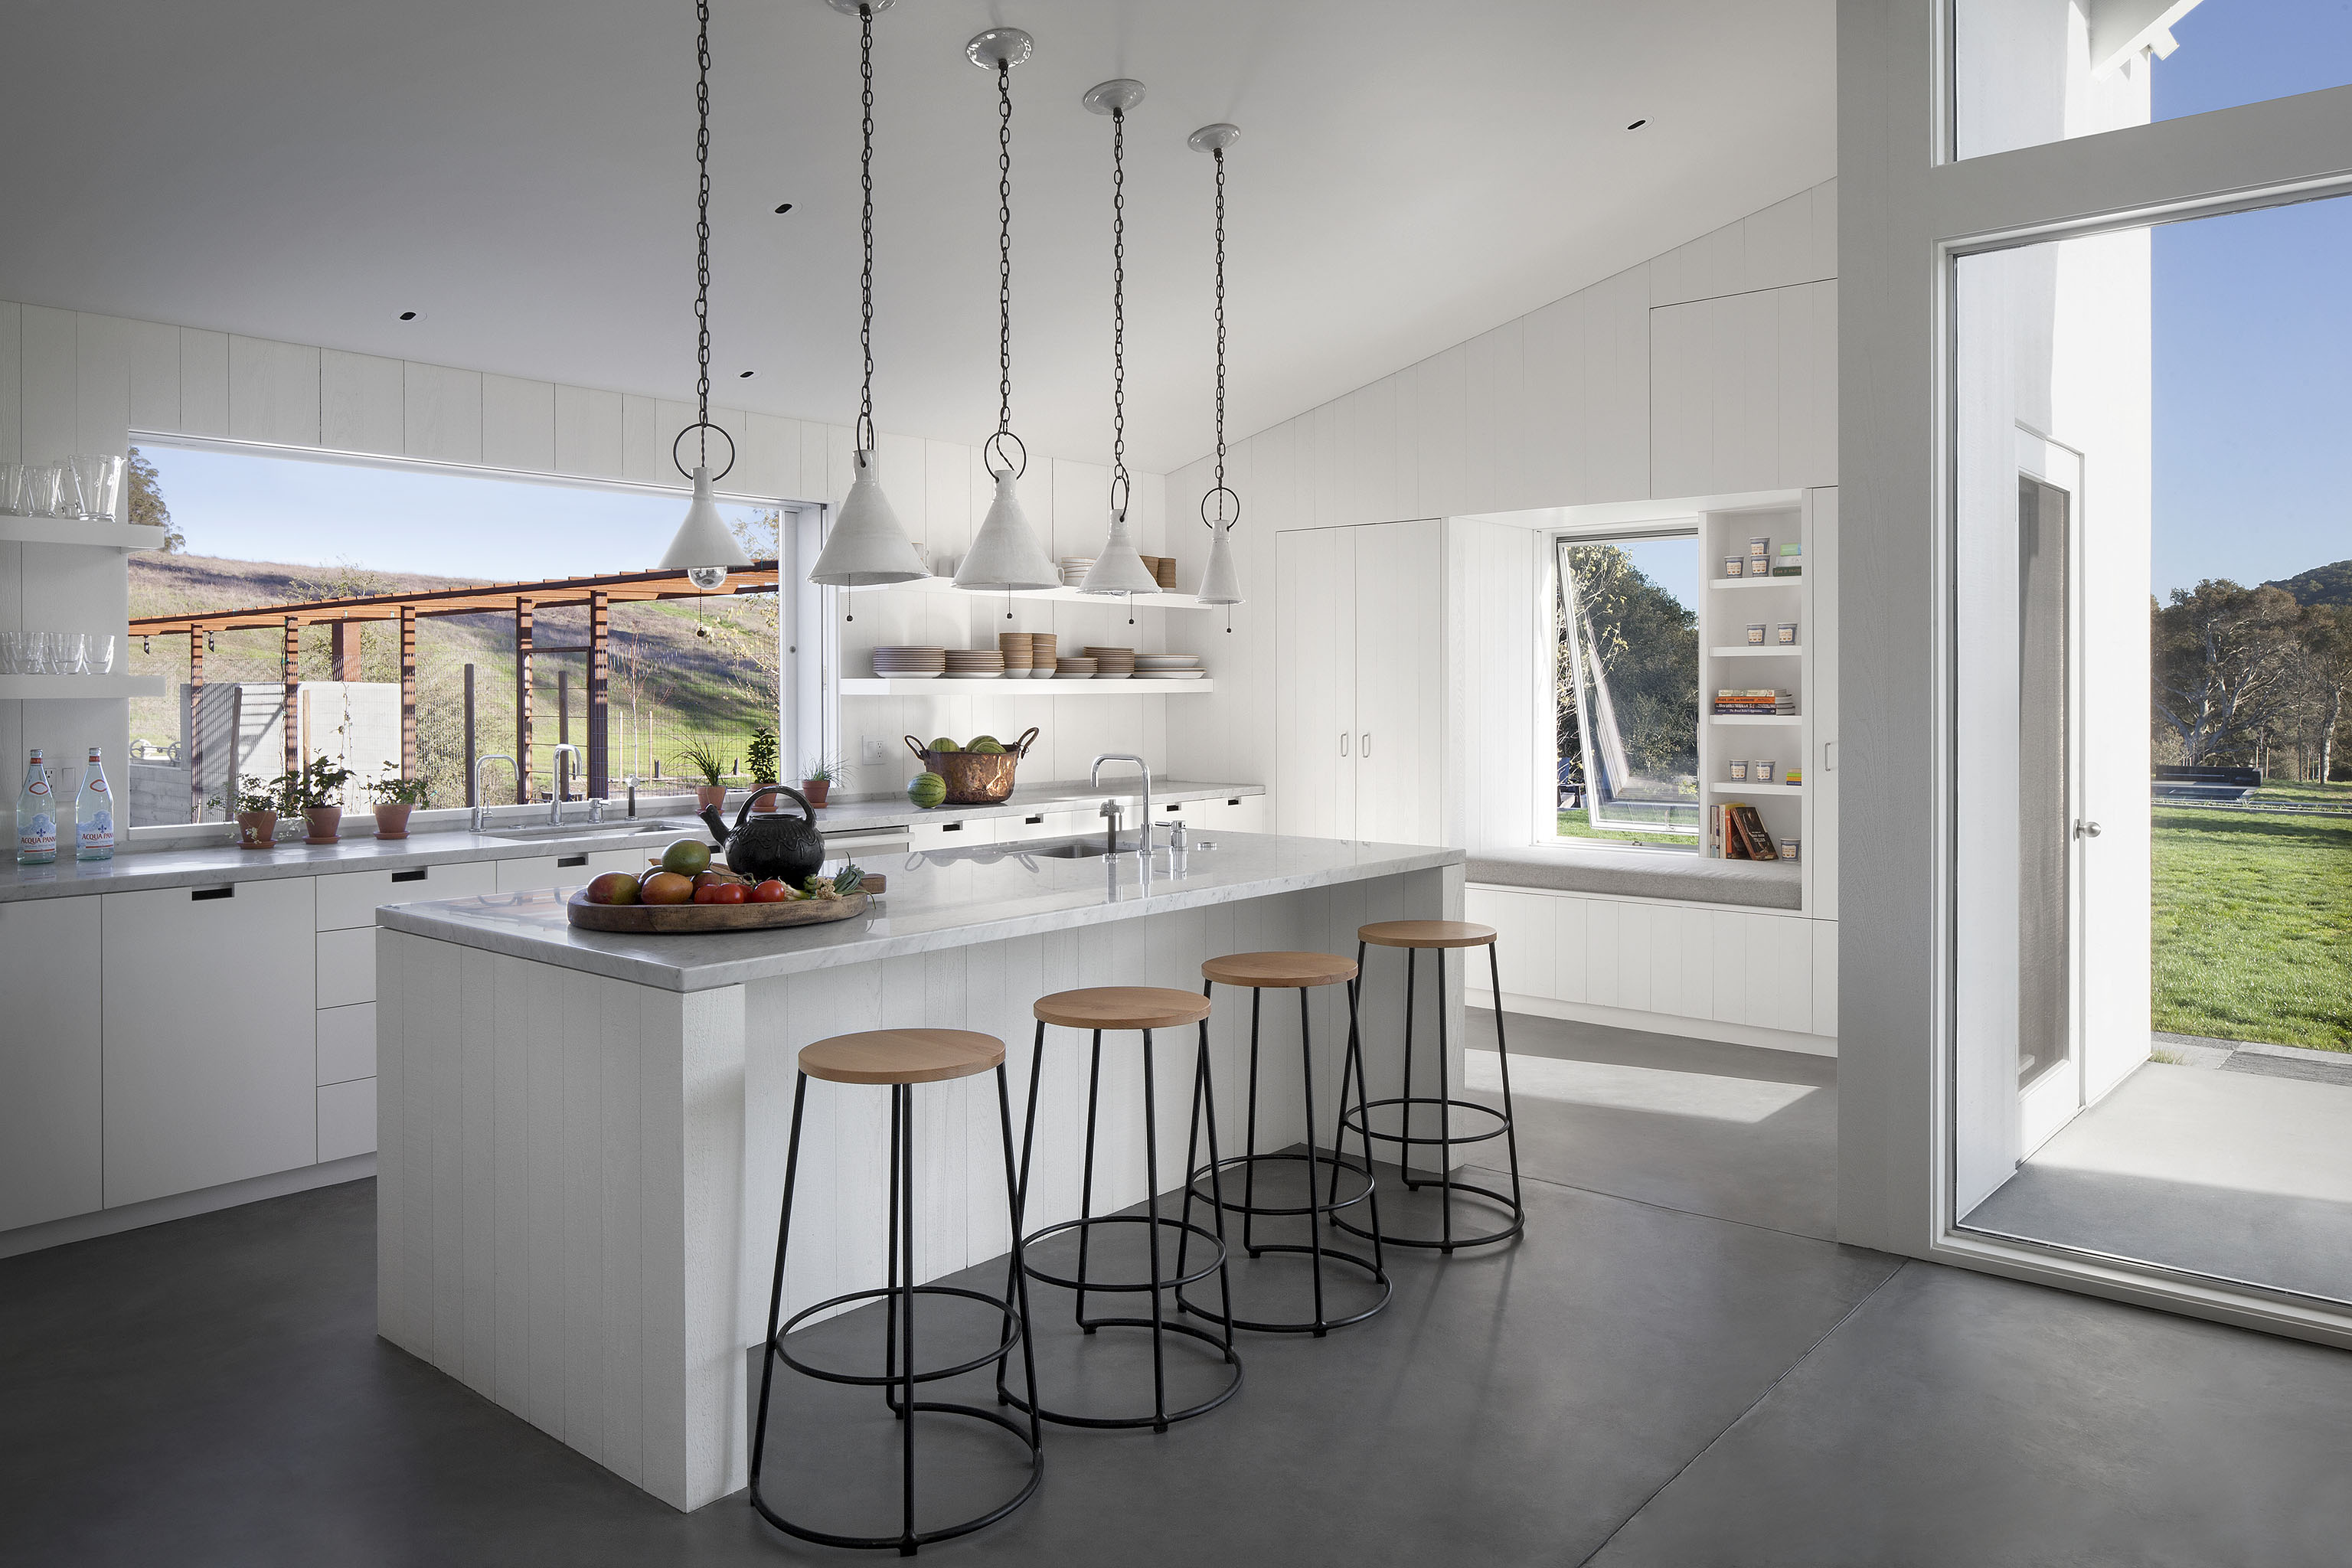 The open kitchen features a large marble topped island at center, beneath an array of pendant lights. Flanked by white built-in shelving, a massive sliding window over the sink allows for fresh air and wide vistas.